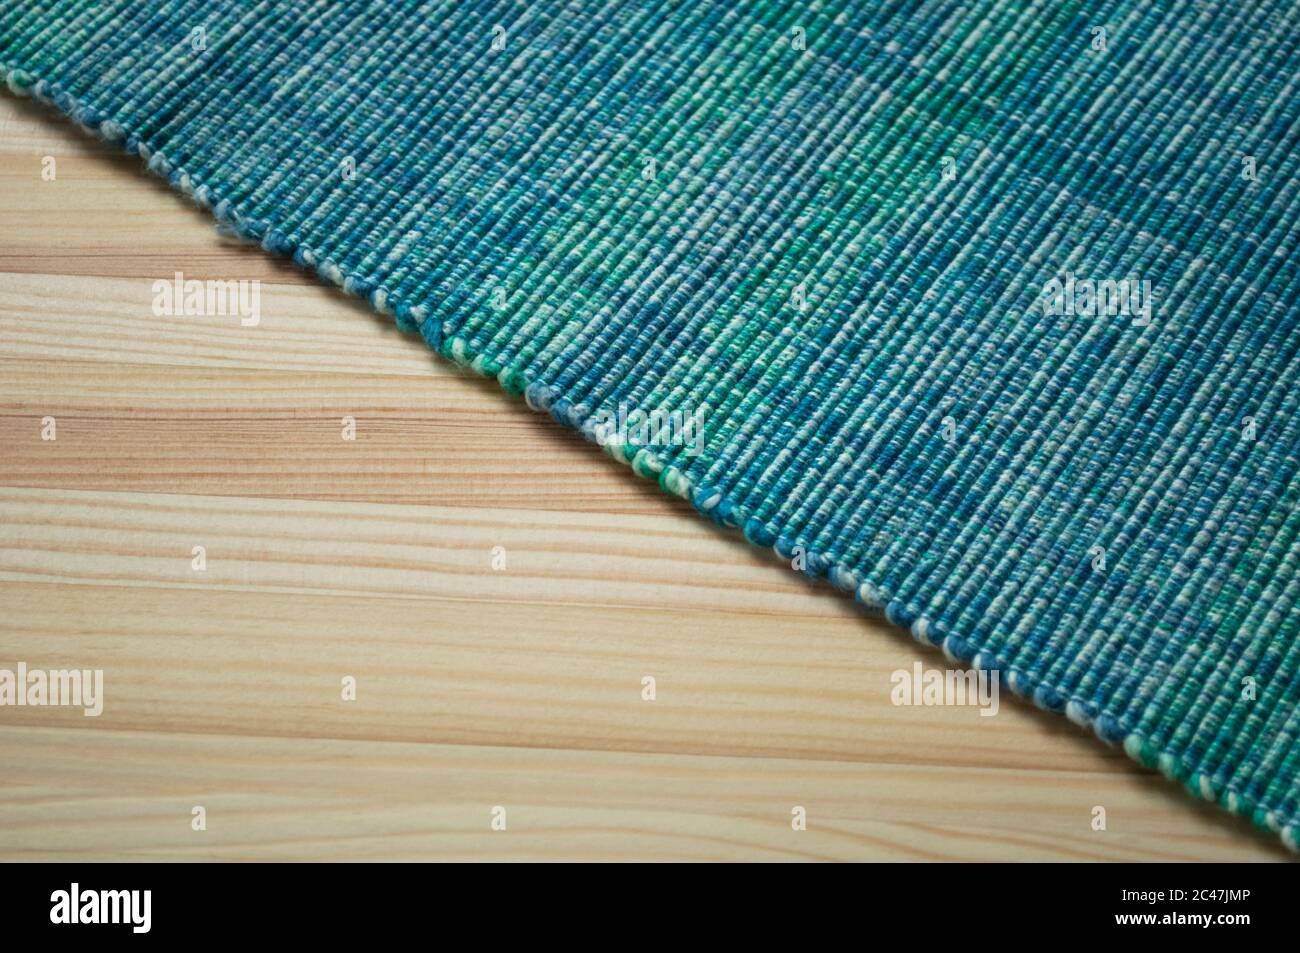 Texture Of Pine Glued Background And Texture Of The Rough Tablecloth Or Canvas Of Blue Shades Folded Diagonally Soft And Solid Stock Photo Alamy